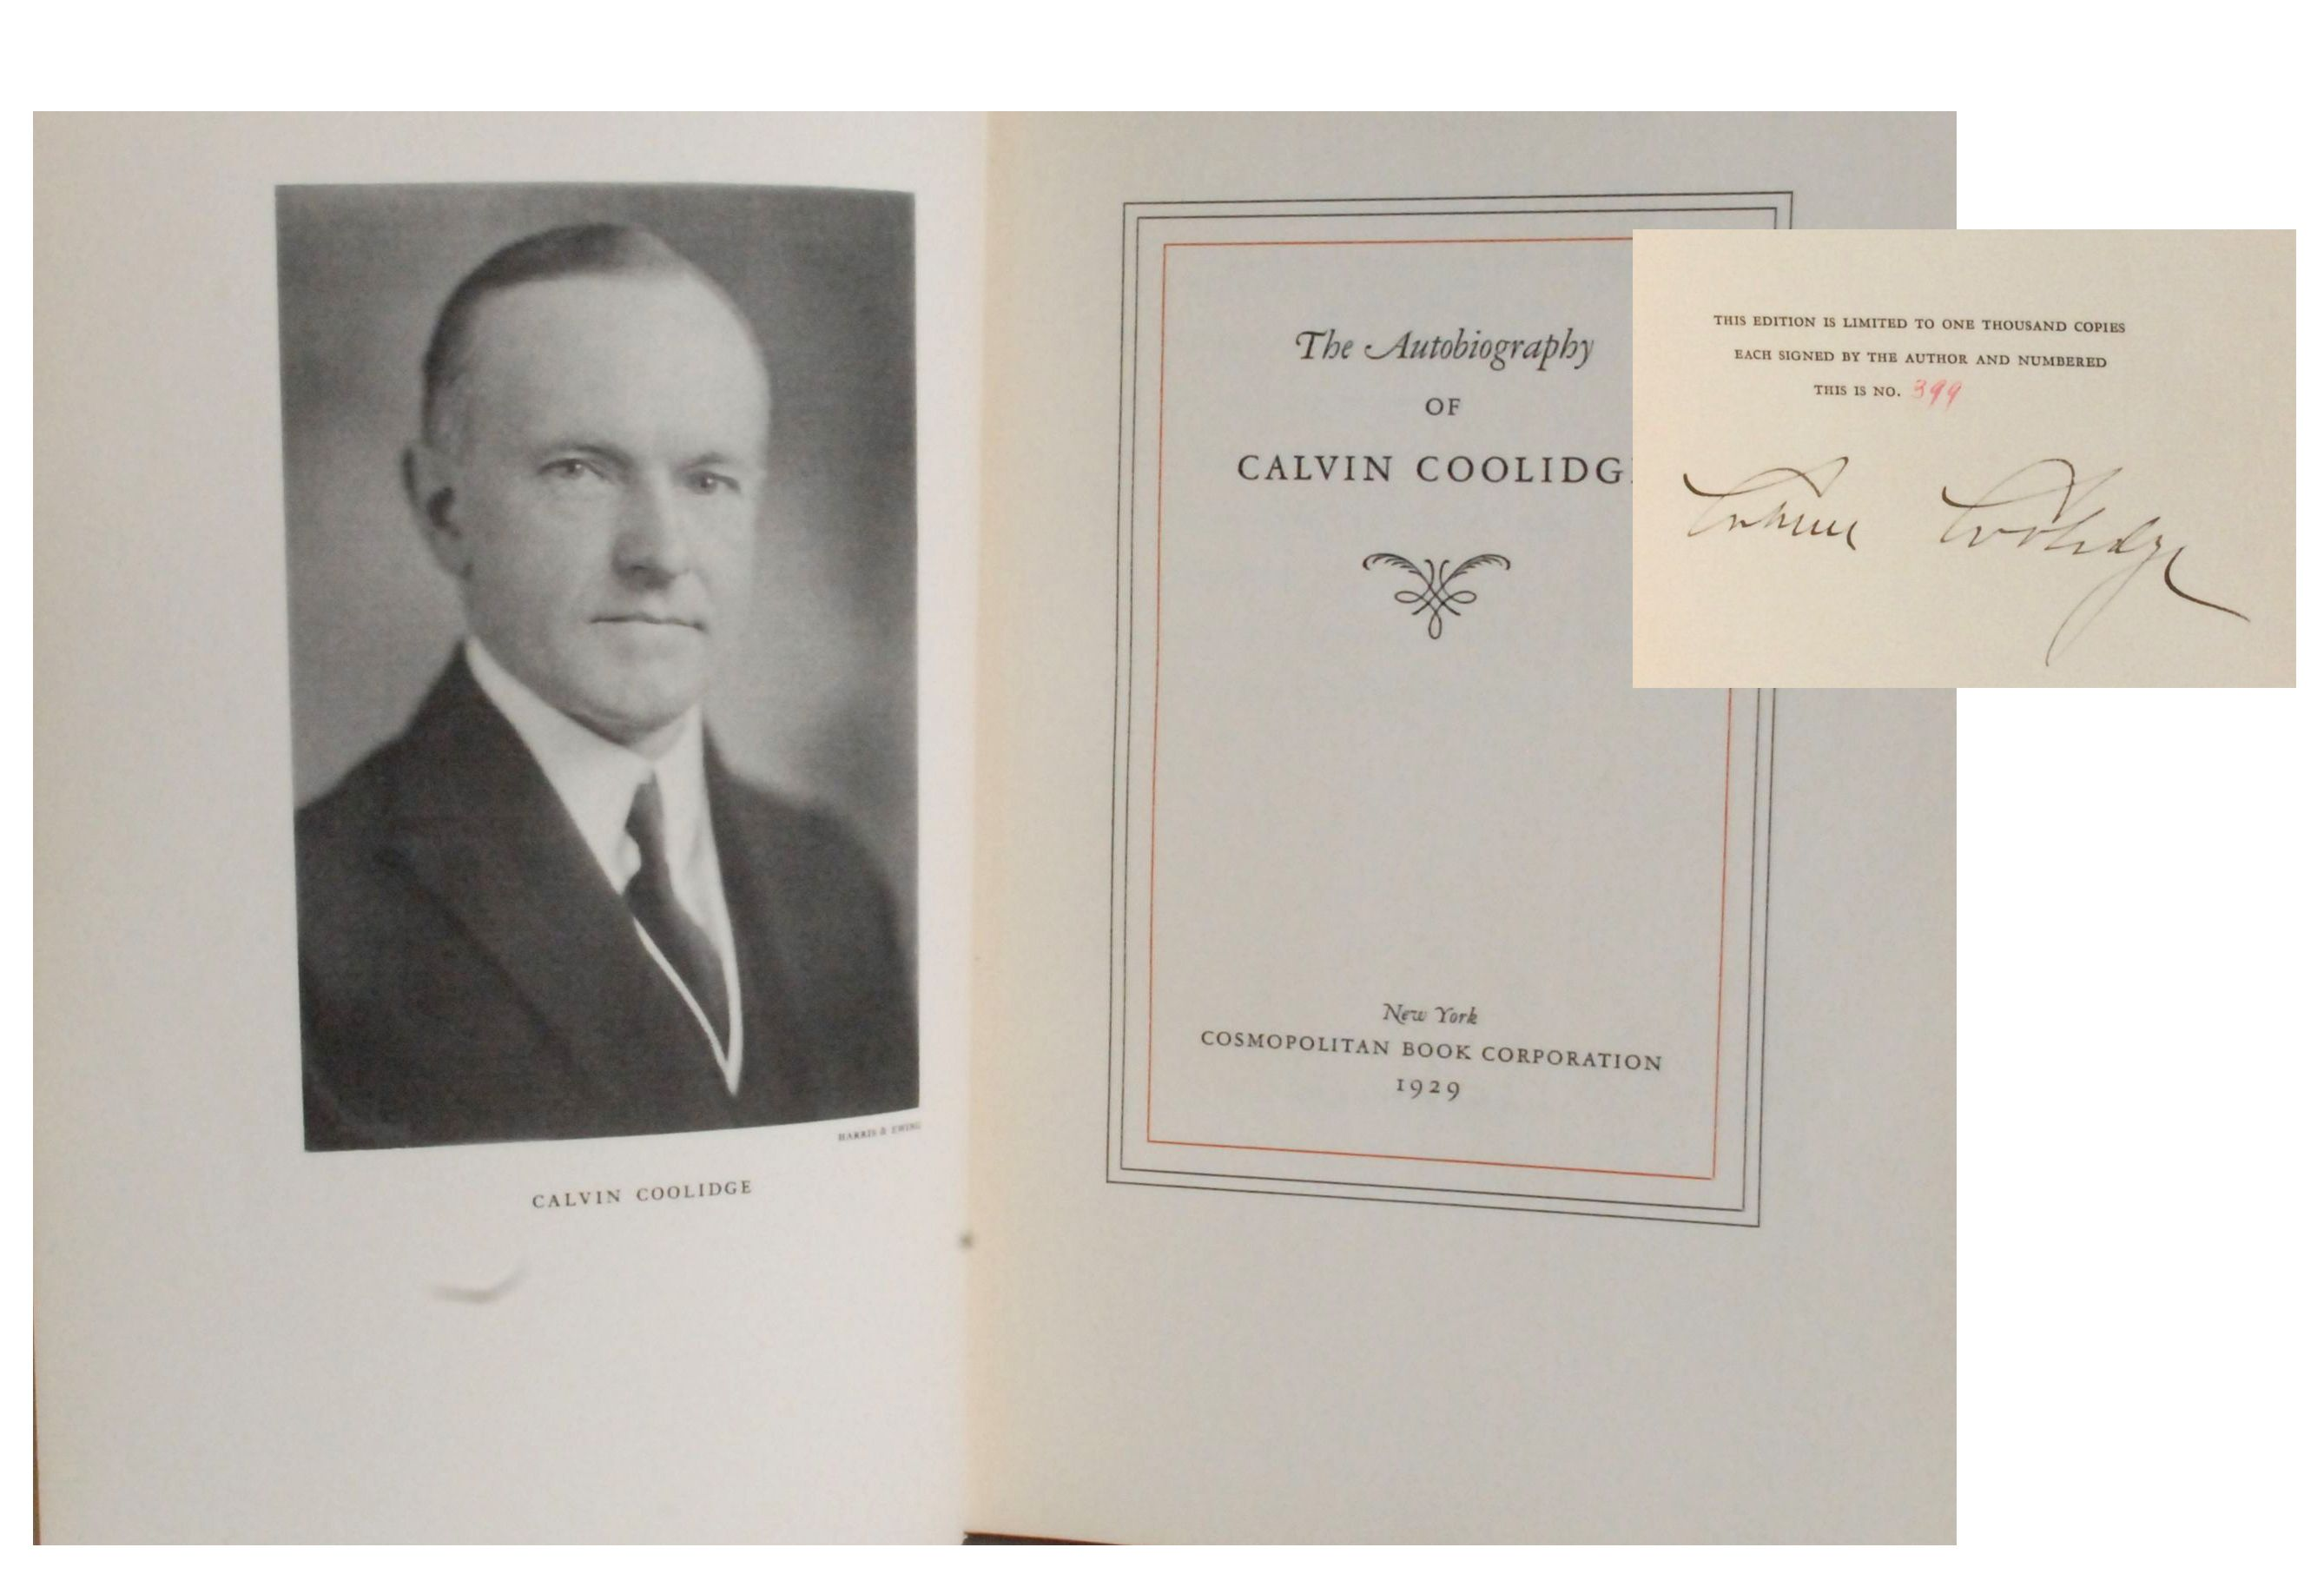 calvin coolidge paper Calvin coolidge essay examples relative topics:  at studymoosecom you will find a wide variety of top-notch essay and term paper samples on any possible topics.